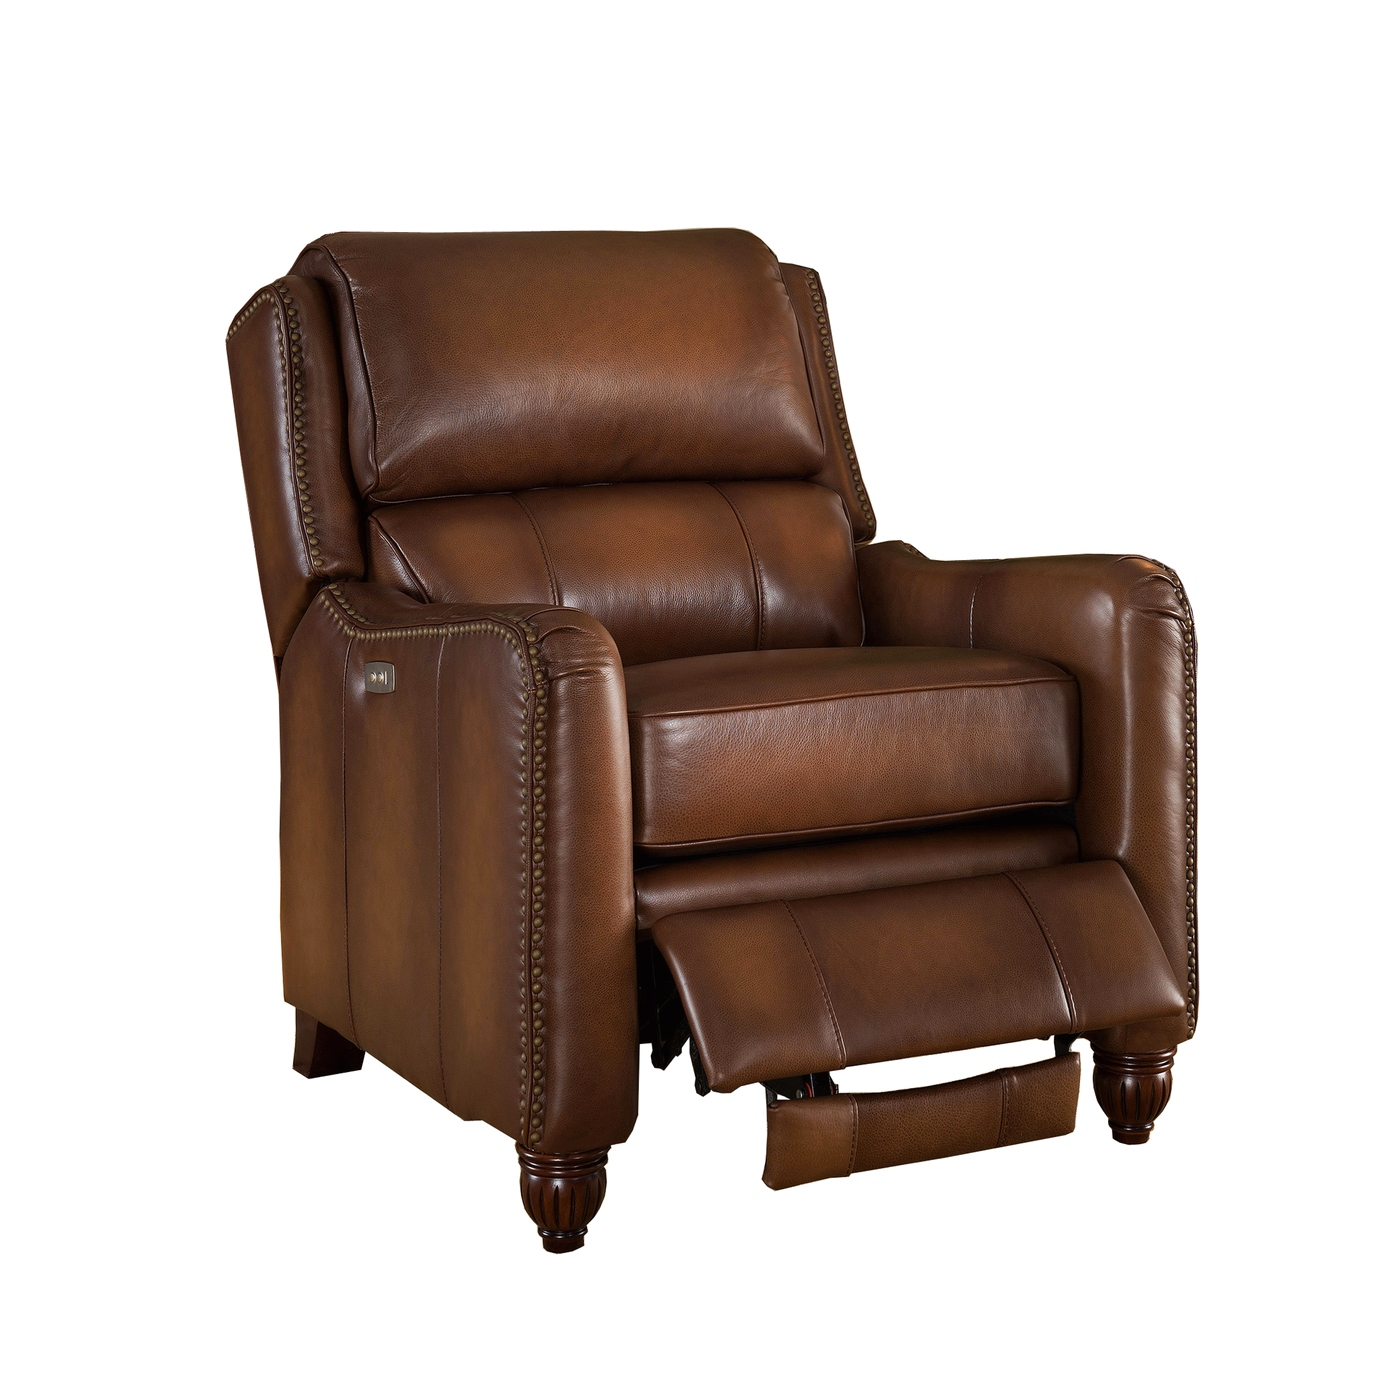 Concord Traditional Top Grain Brown Leather Powered